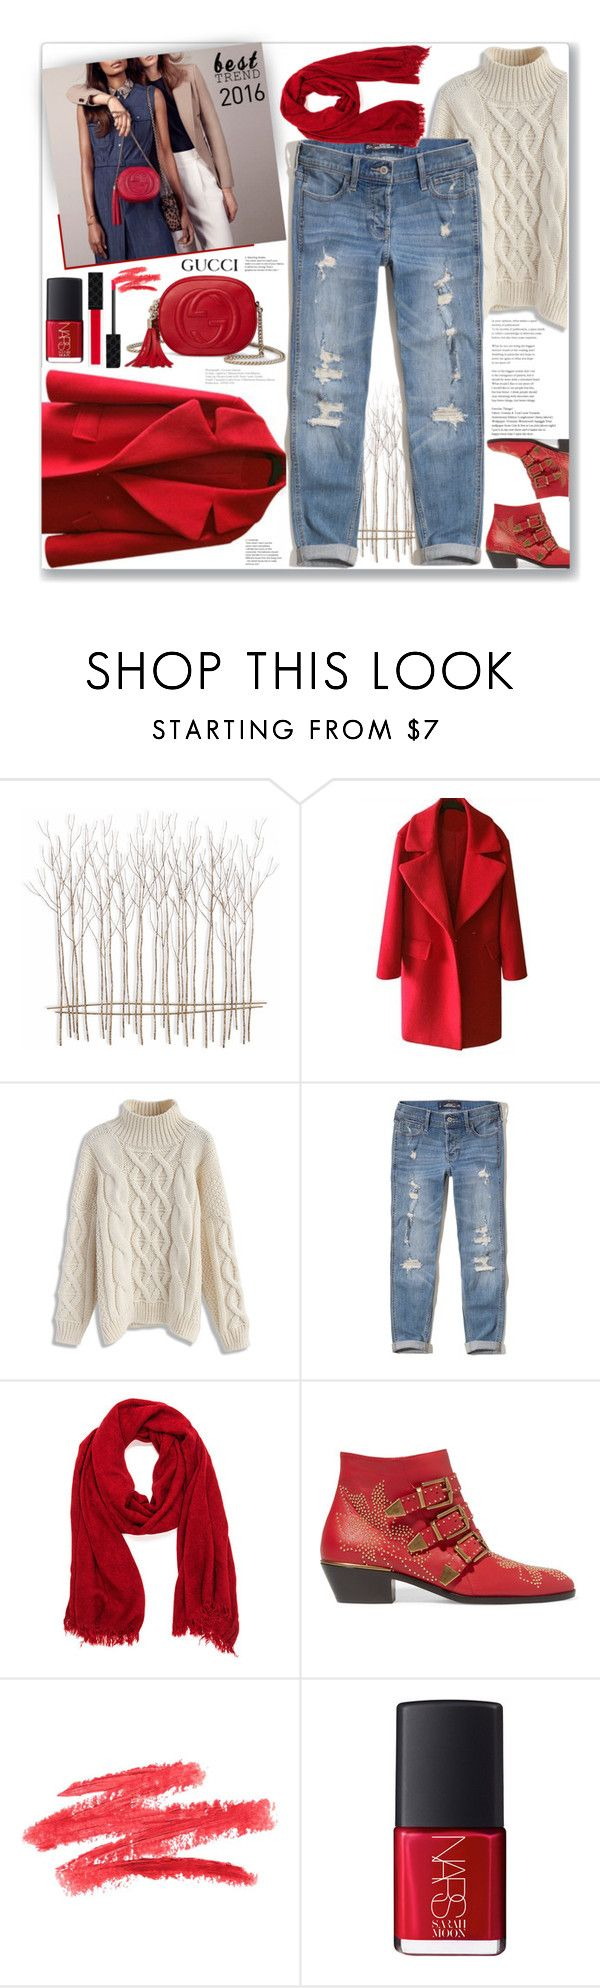 """""""Best Trend of 2016: Denim & Red"""" by firstclass1 ❤ liked on Polyvore featuring Fox, Chicwish, Hollister Co., Chloé, NARS Cosmetics and Gucci"""